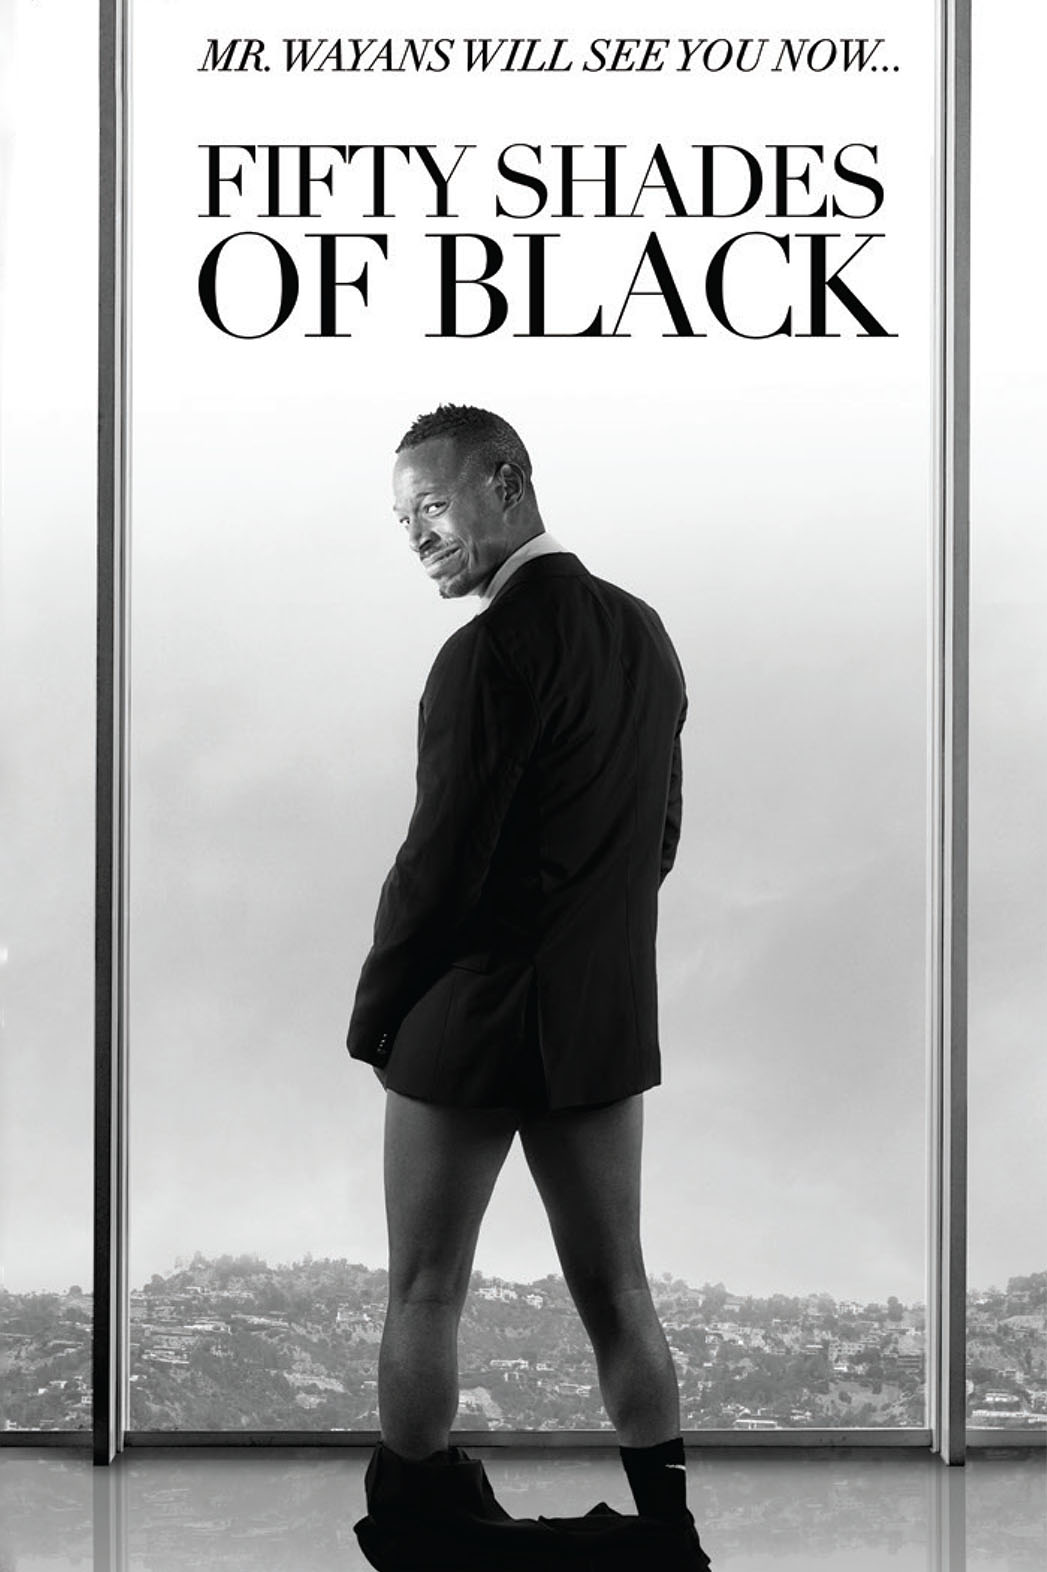 Fifty Shades of Black Spoof - P 2015